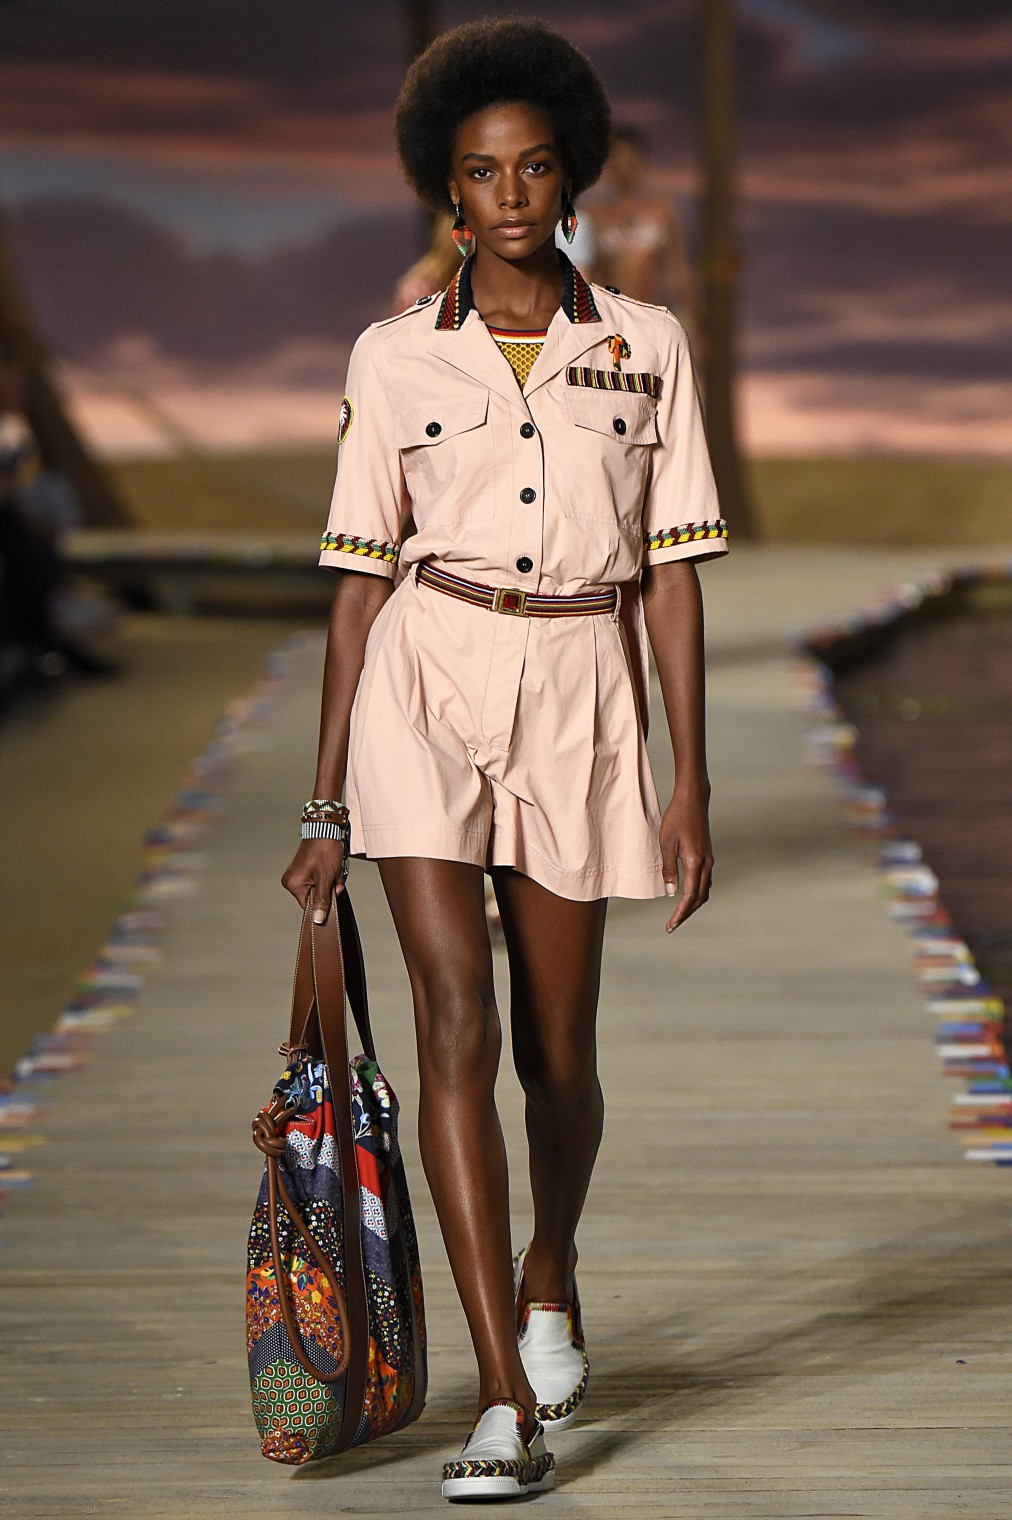 NEW YORK, NY - SEPTEMBER 14: Karly Loyce walks the runway at the Tommy Hilfiger Women's Spring Summer 2016 fashion show during the New York Fashion Week on September 14, 2015 in New York City. (Photo by Victor VIRGILE/Gamma-Rapho via Getty Images)